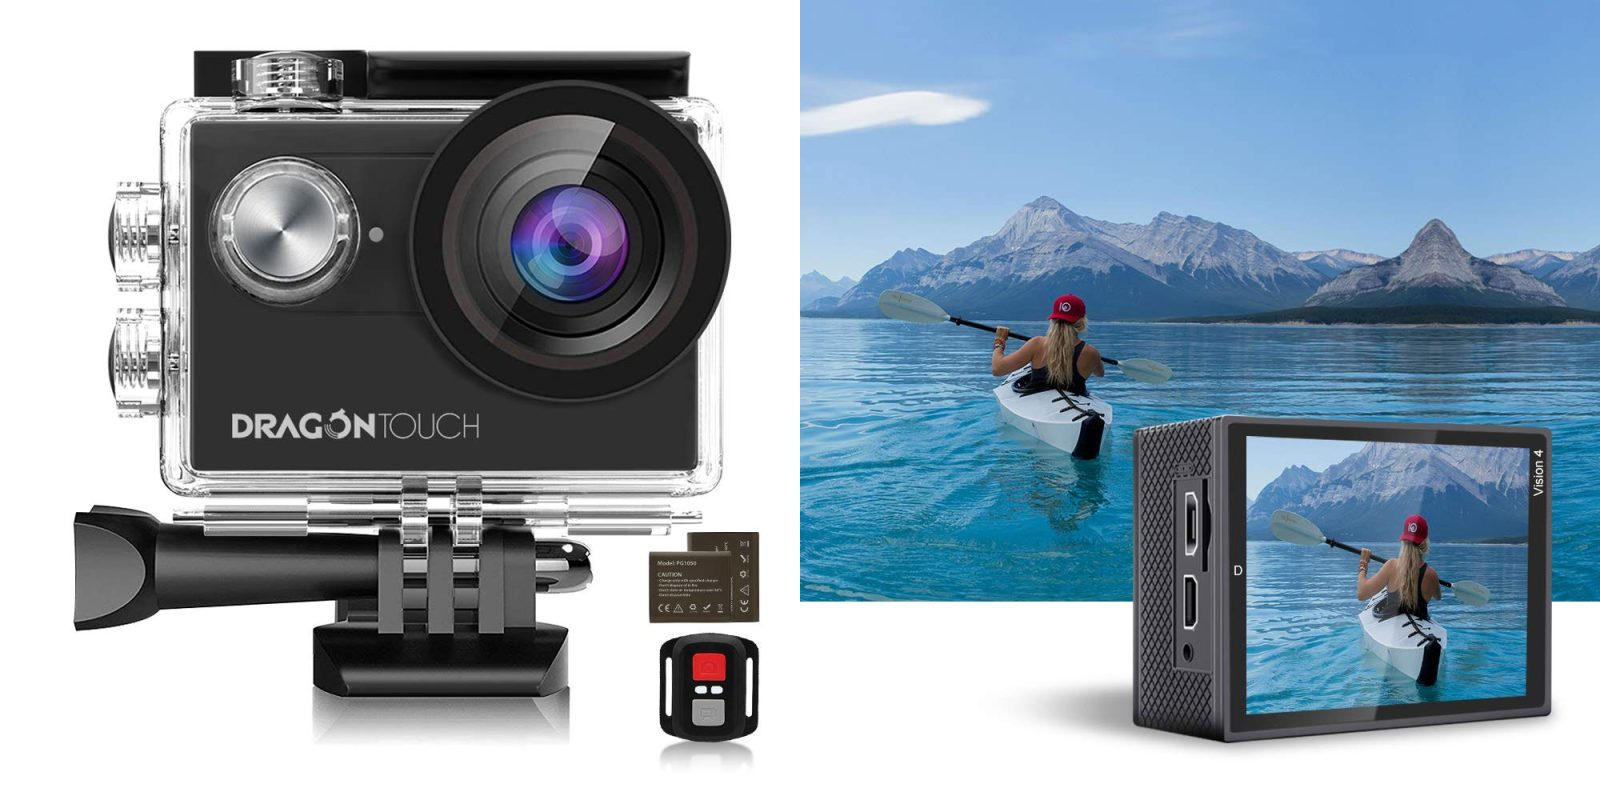 Don't spend hundreds on a GoPro when this 4K waterproof action camera is $39